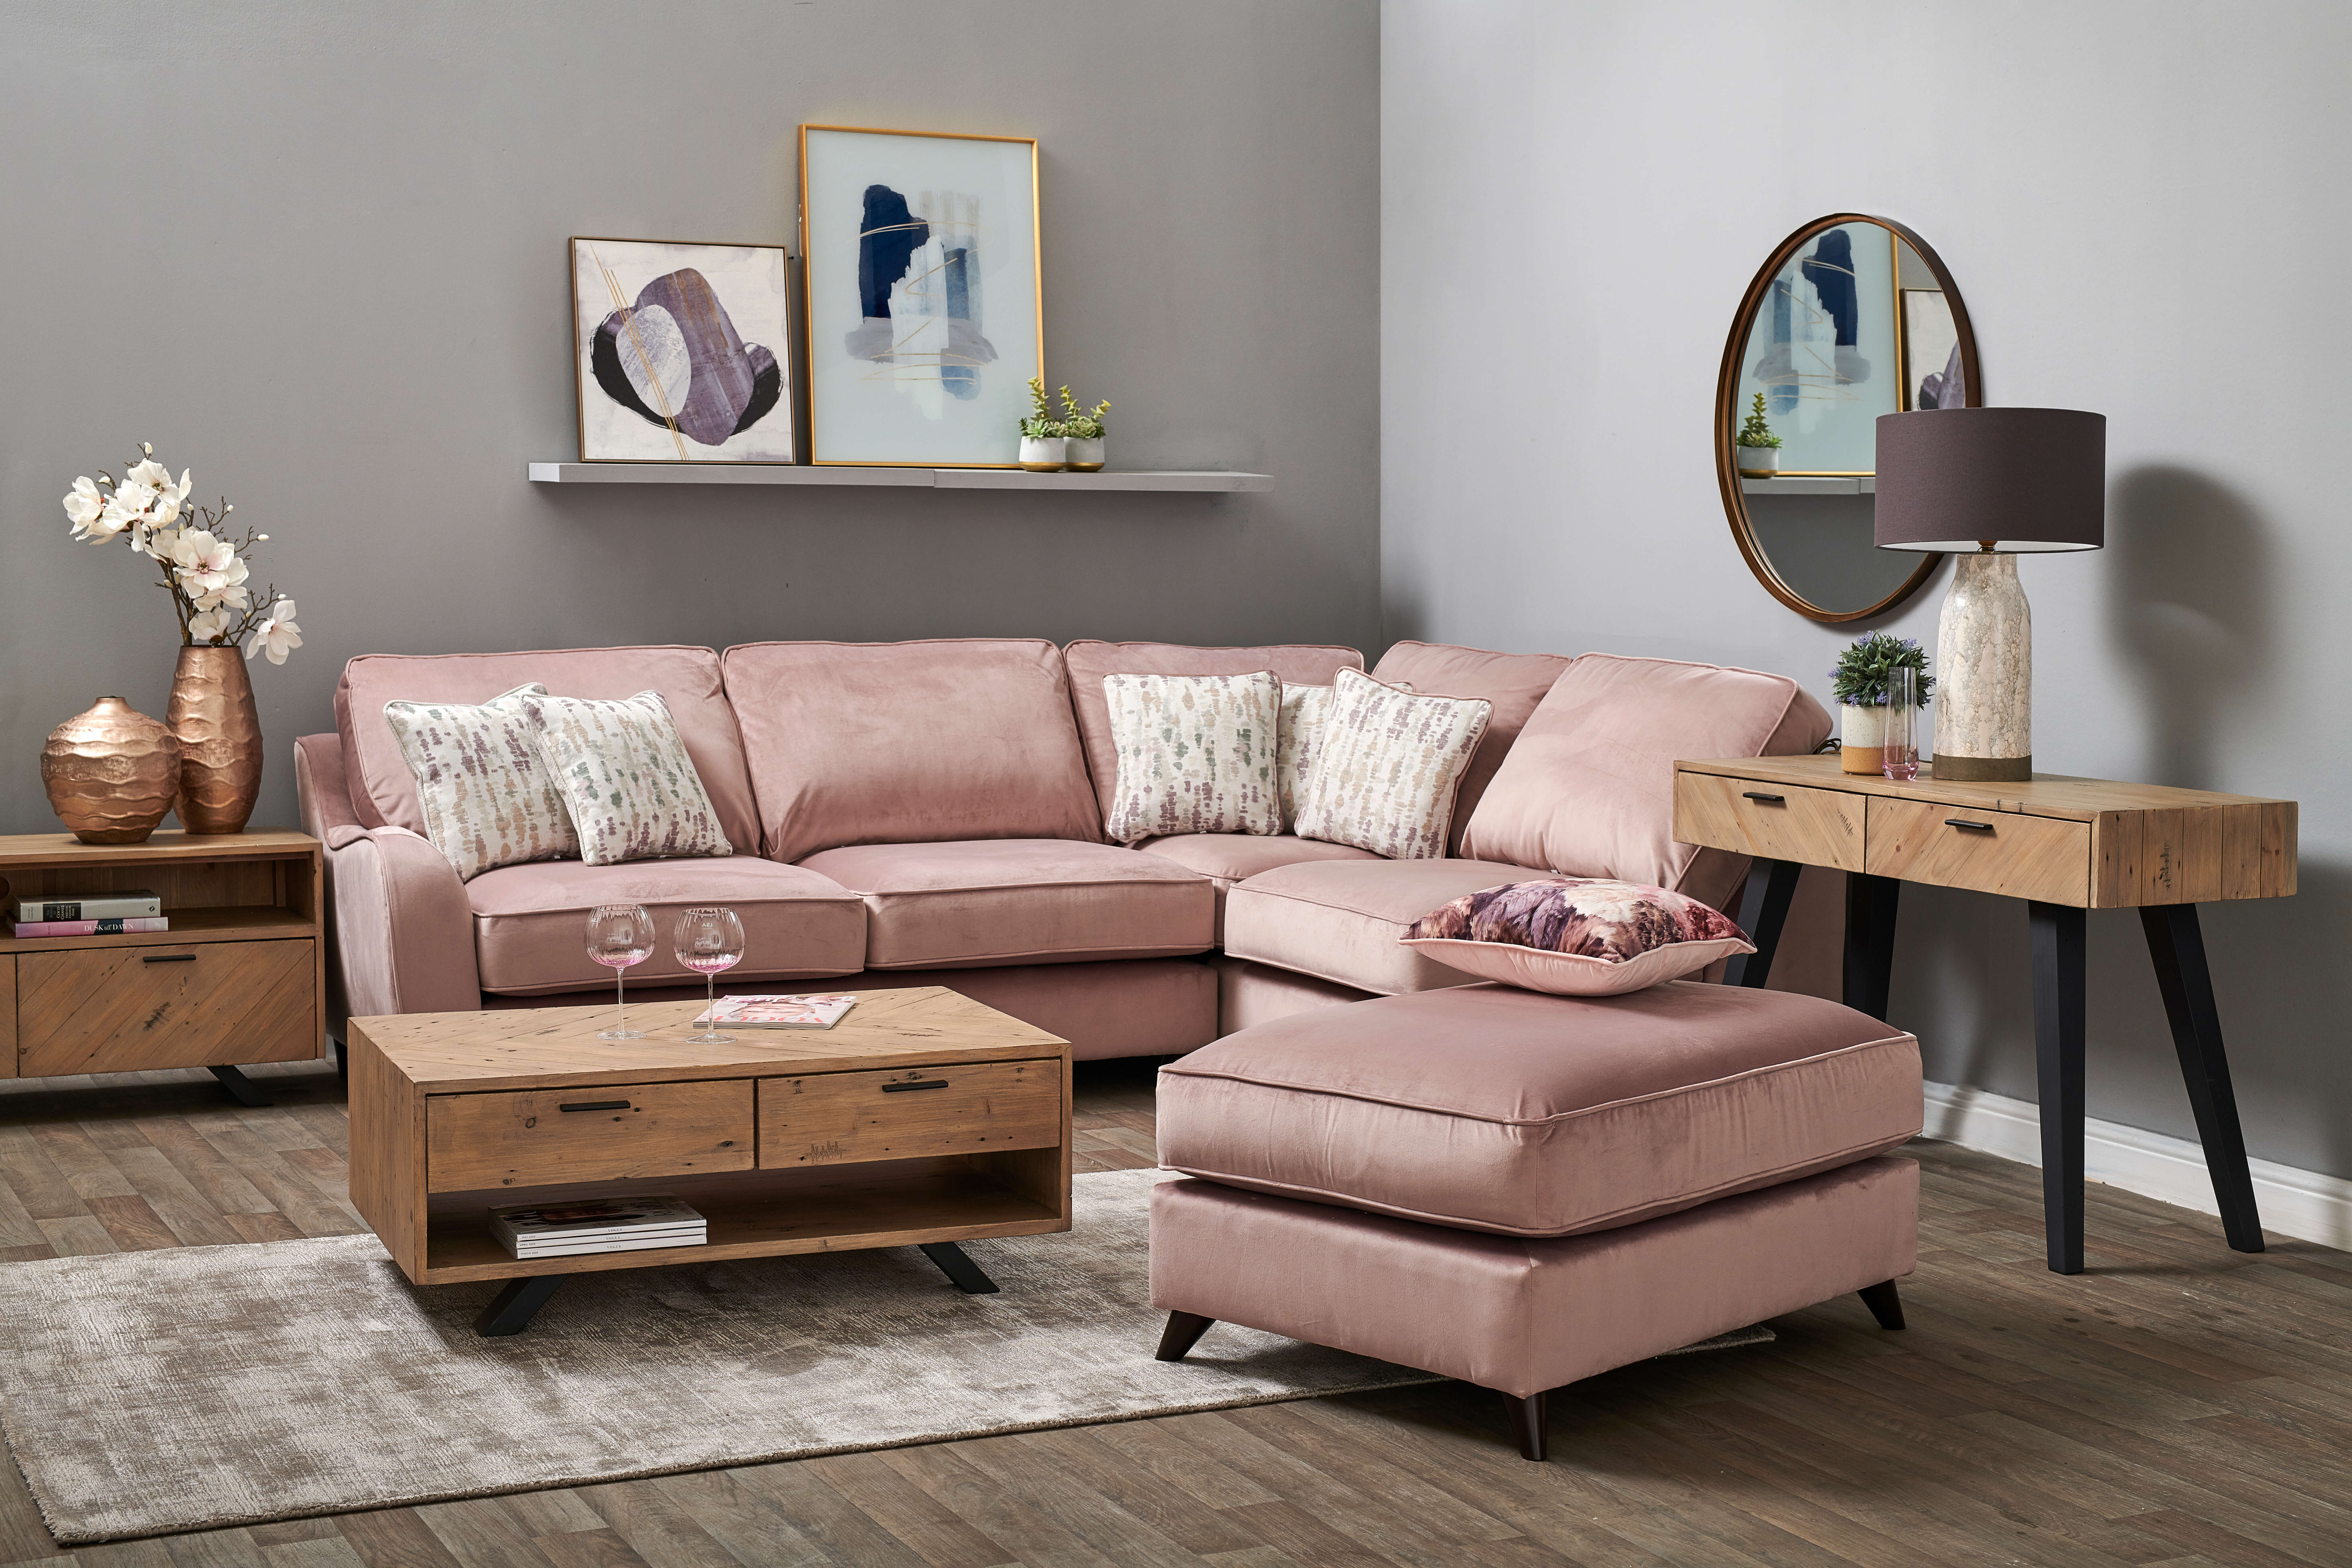 New autumn collections at Leekes